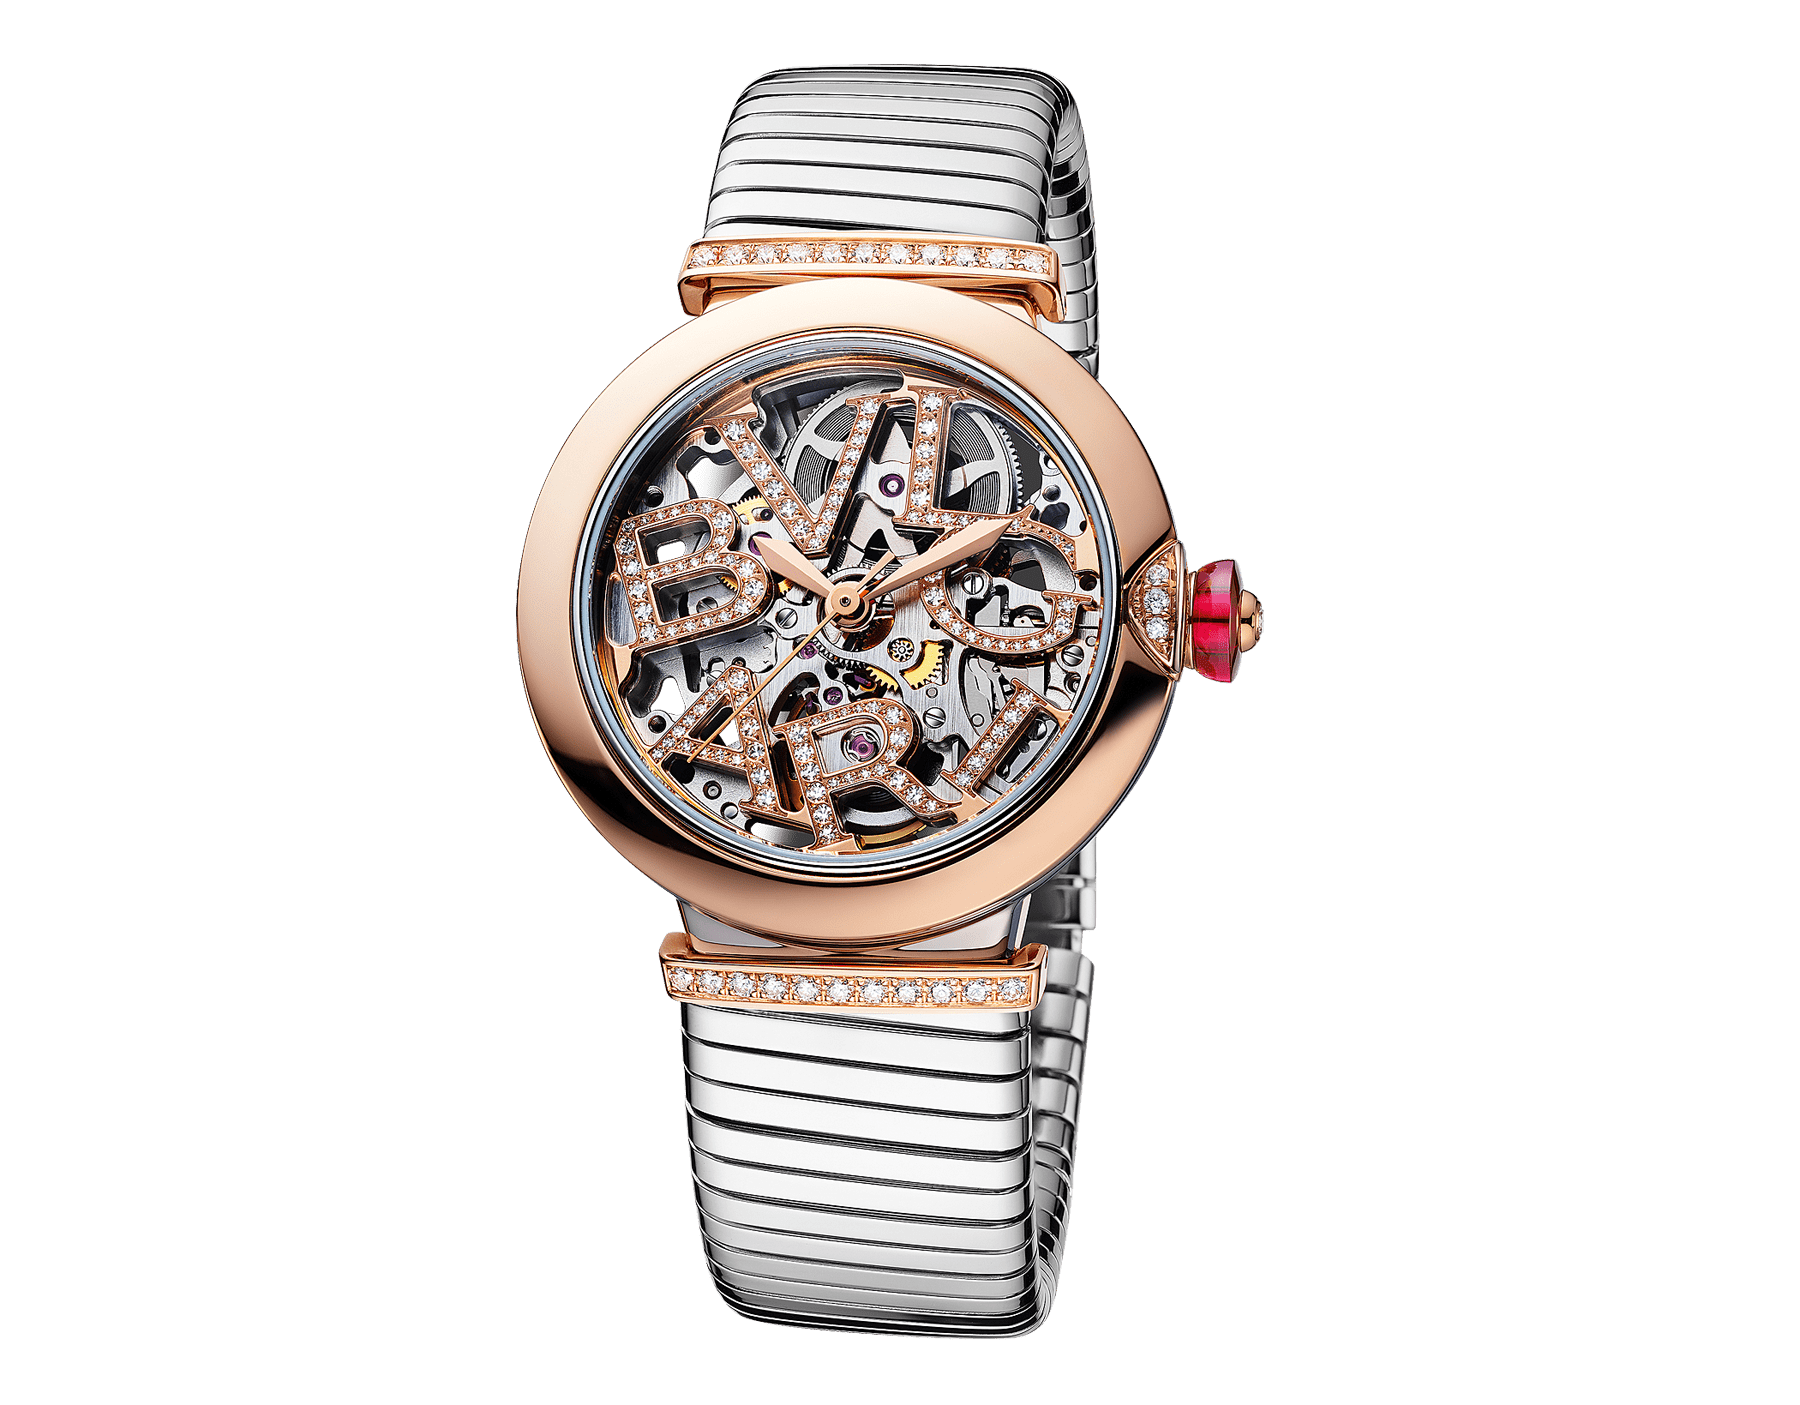 LVCEA Skeleton watch with mechanical movement, automatic winding, stainless steel case, 18 kt rose gold bezel with diamond detail, 18 kt rose gold openwork BVLGARI logo dial and links both set with round brilliant-cut diamonds, and stainless steel tubogas bracelet 103093 image 2